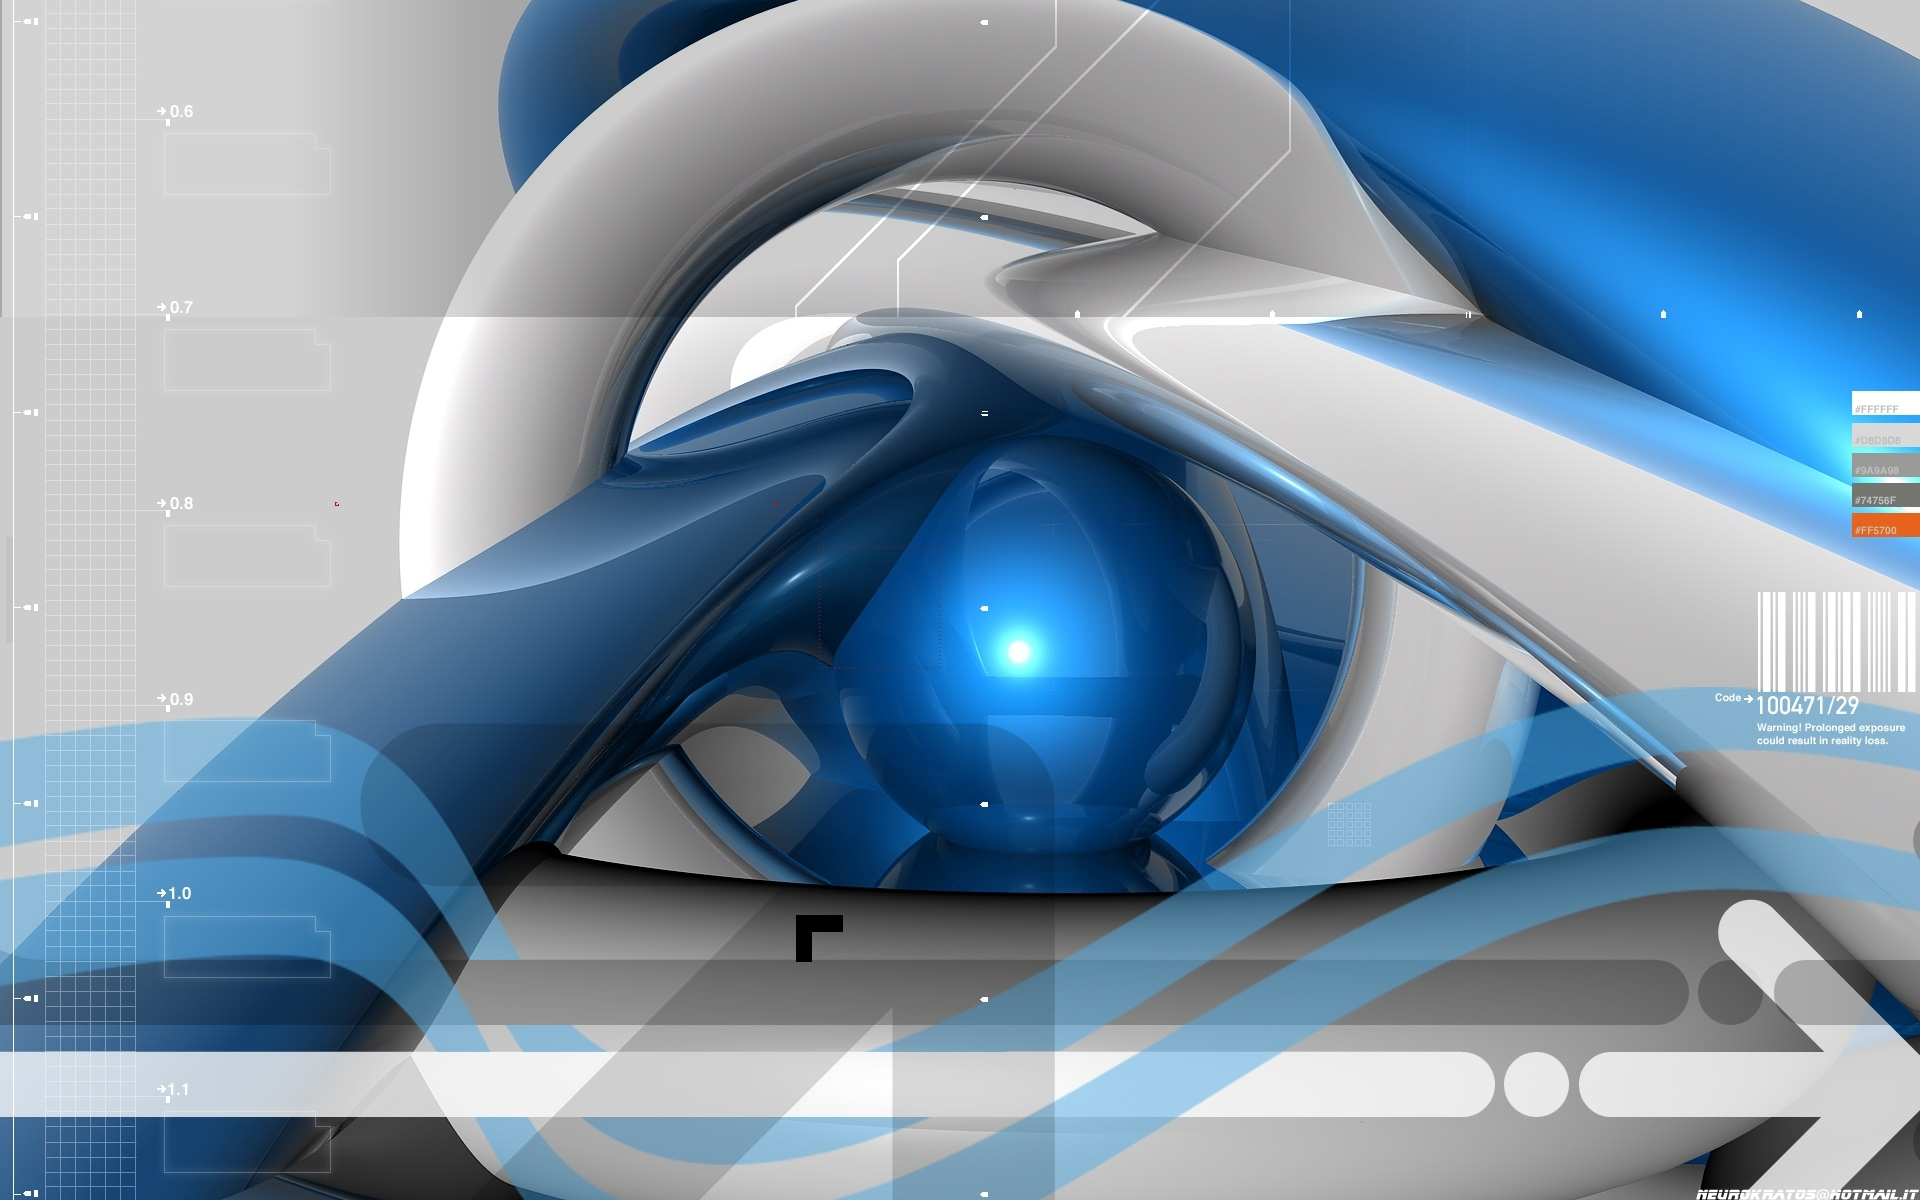 cobalt Control by neurokratos HD Wallpaper